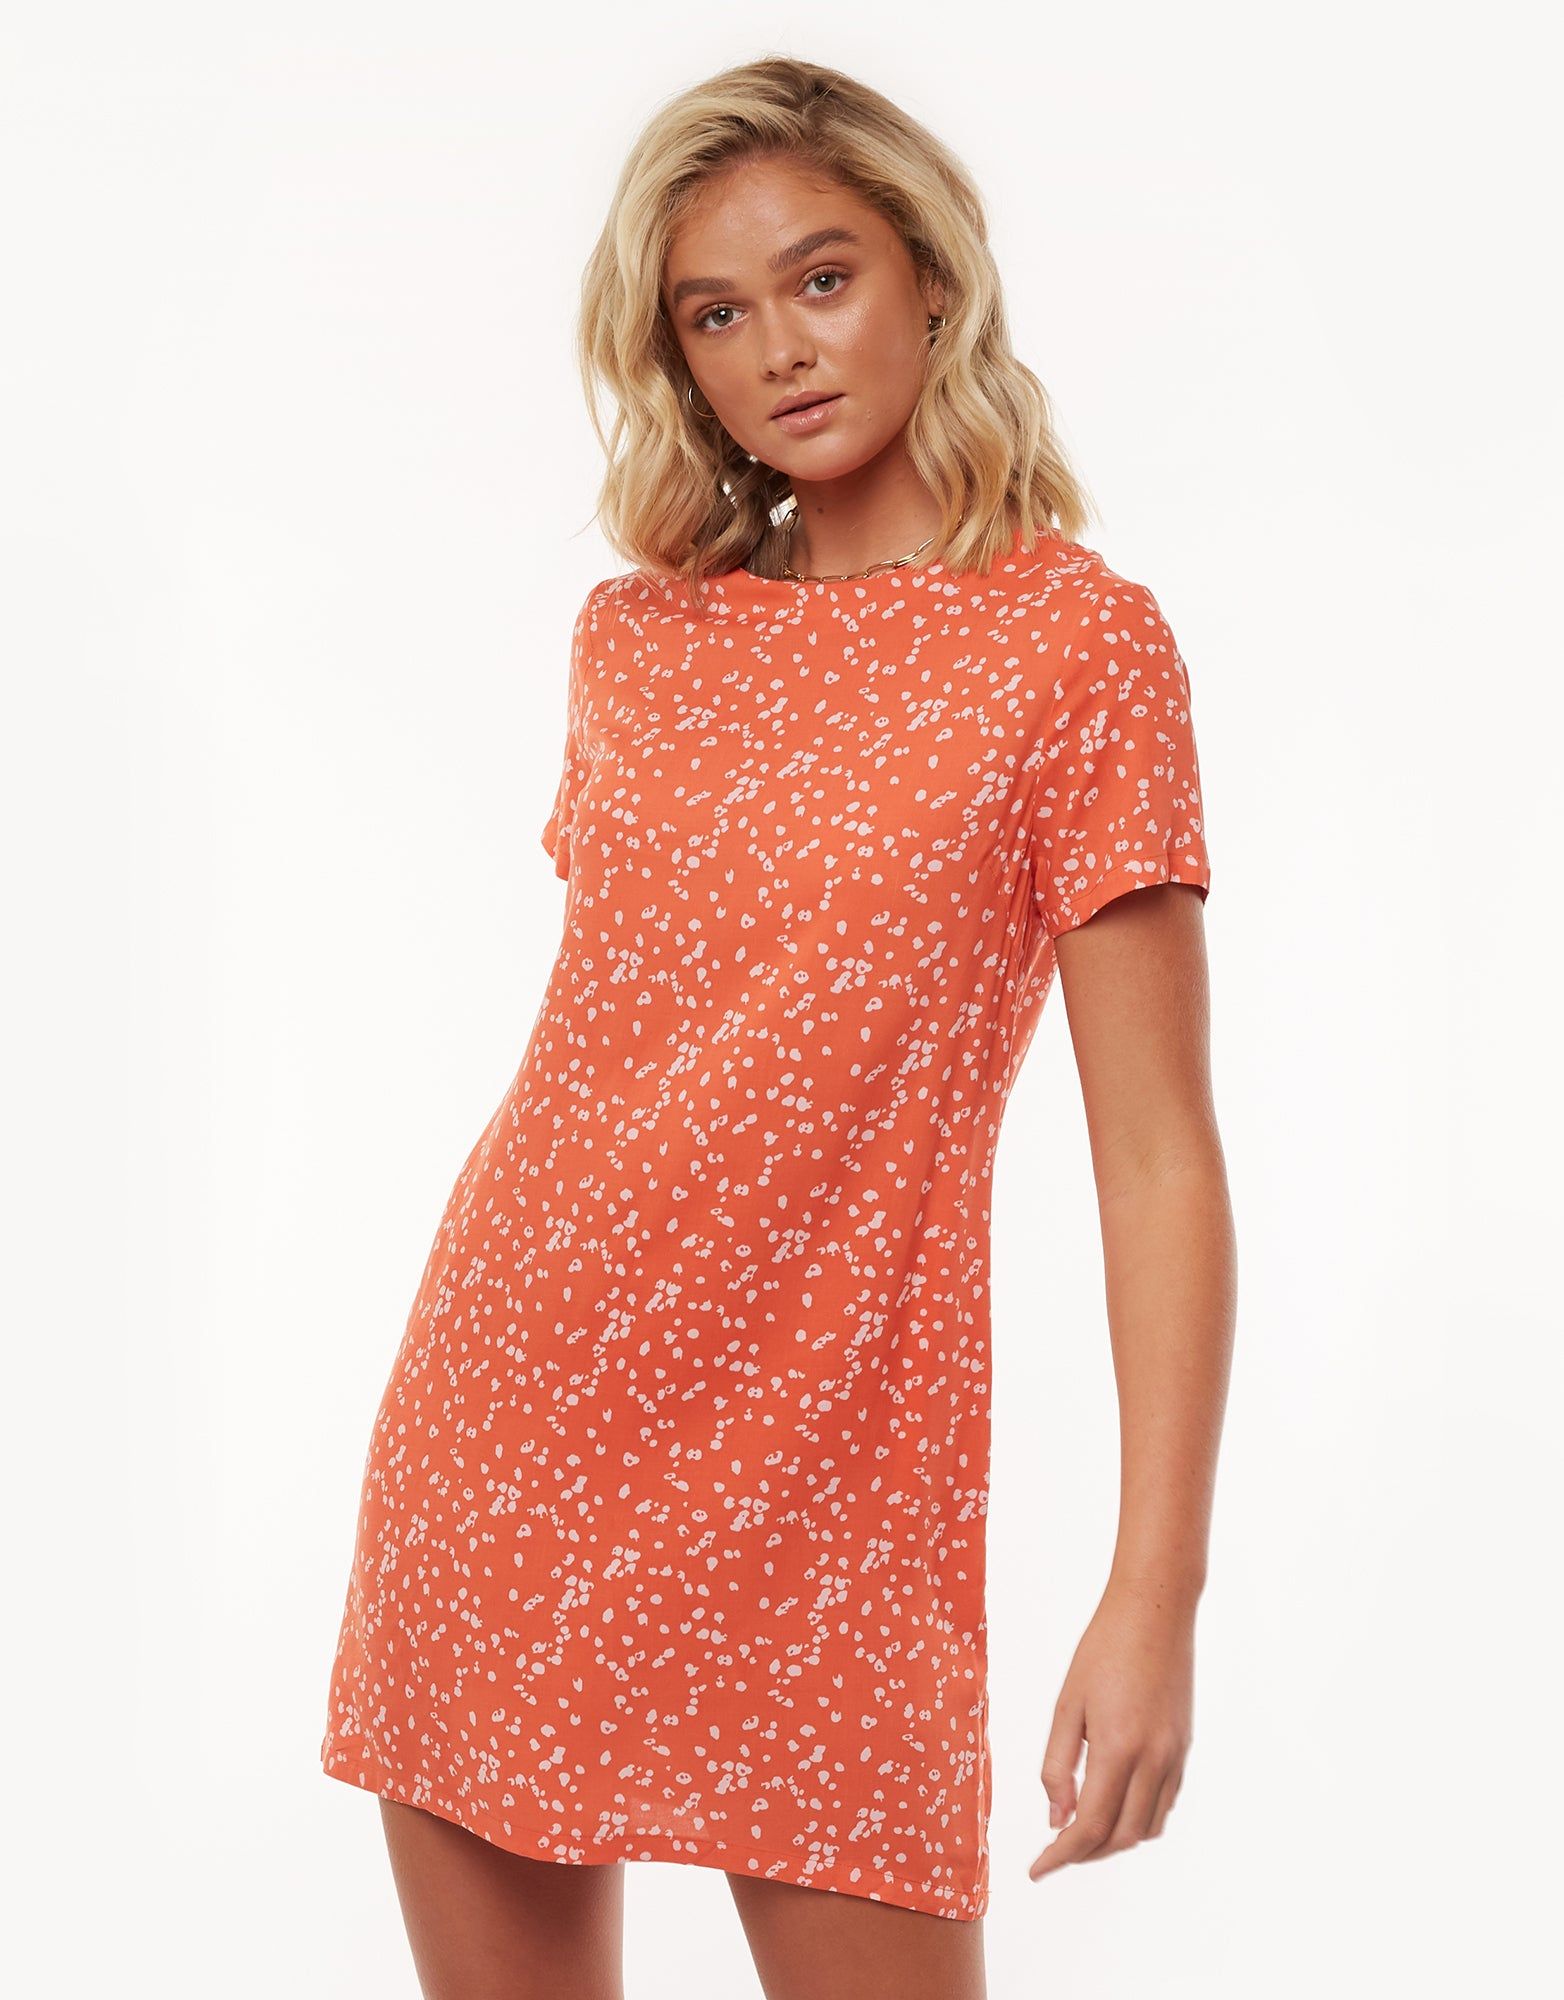 All About Eve Clothing SPRING SHIFT DRESS - PRINT